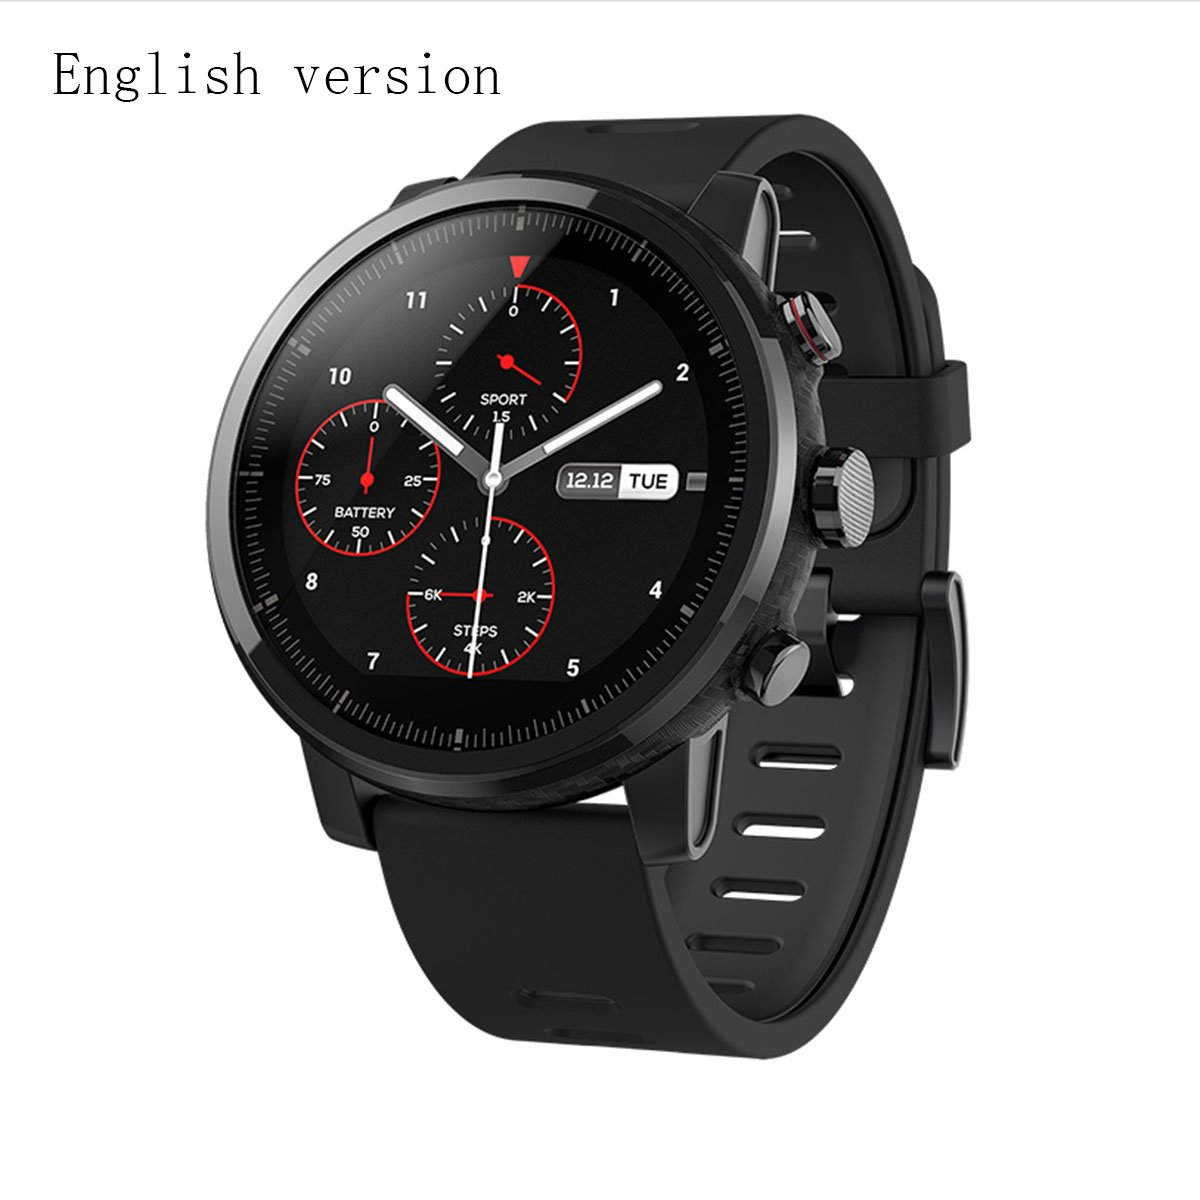 Xiaomi Huami Amazfit Smart Watch Stratos 2 Sports Smartwatch With Gps Ppg Heart Rate Monitor 5 Atm Waterproof English Version by Amazon